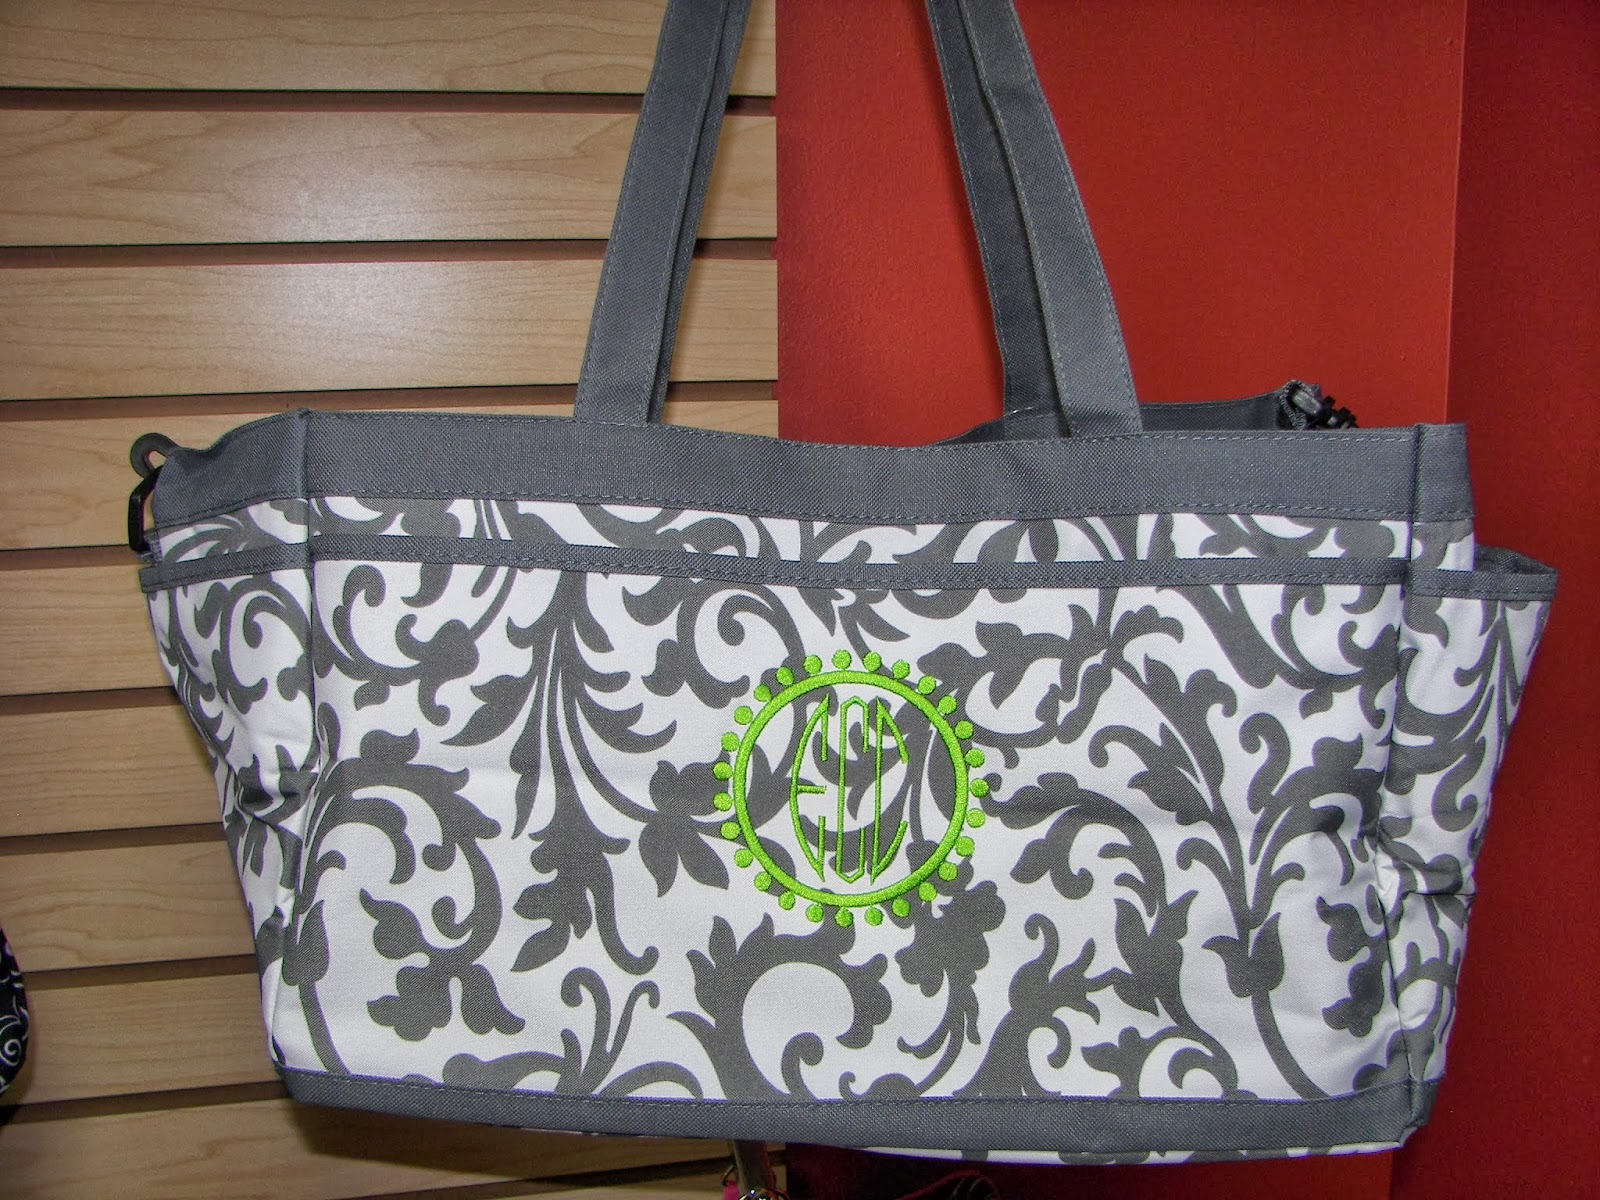 Show me logos monogrammed bags make creative gifts